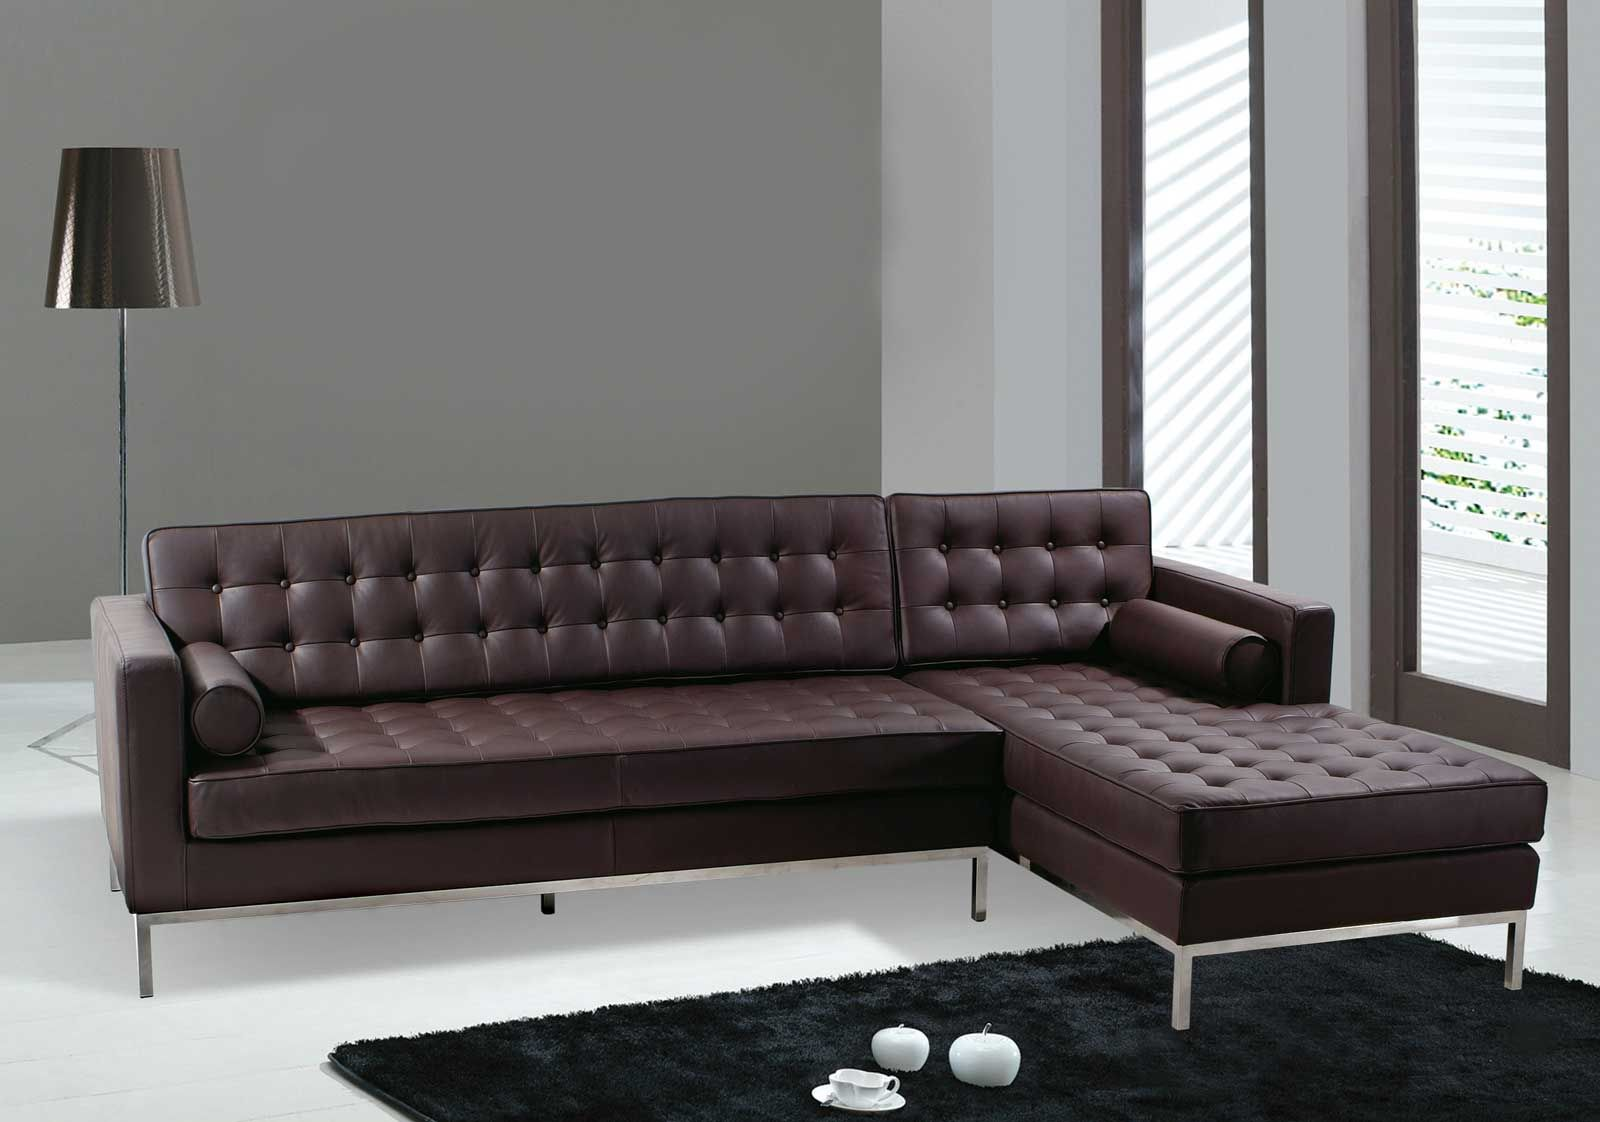 Furniture Design Sofa leather sofa modern design, modern leather sofa design